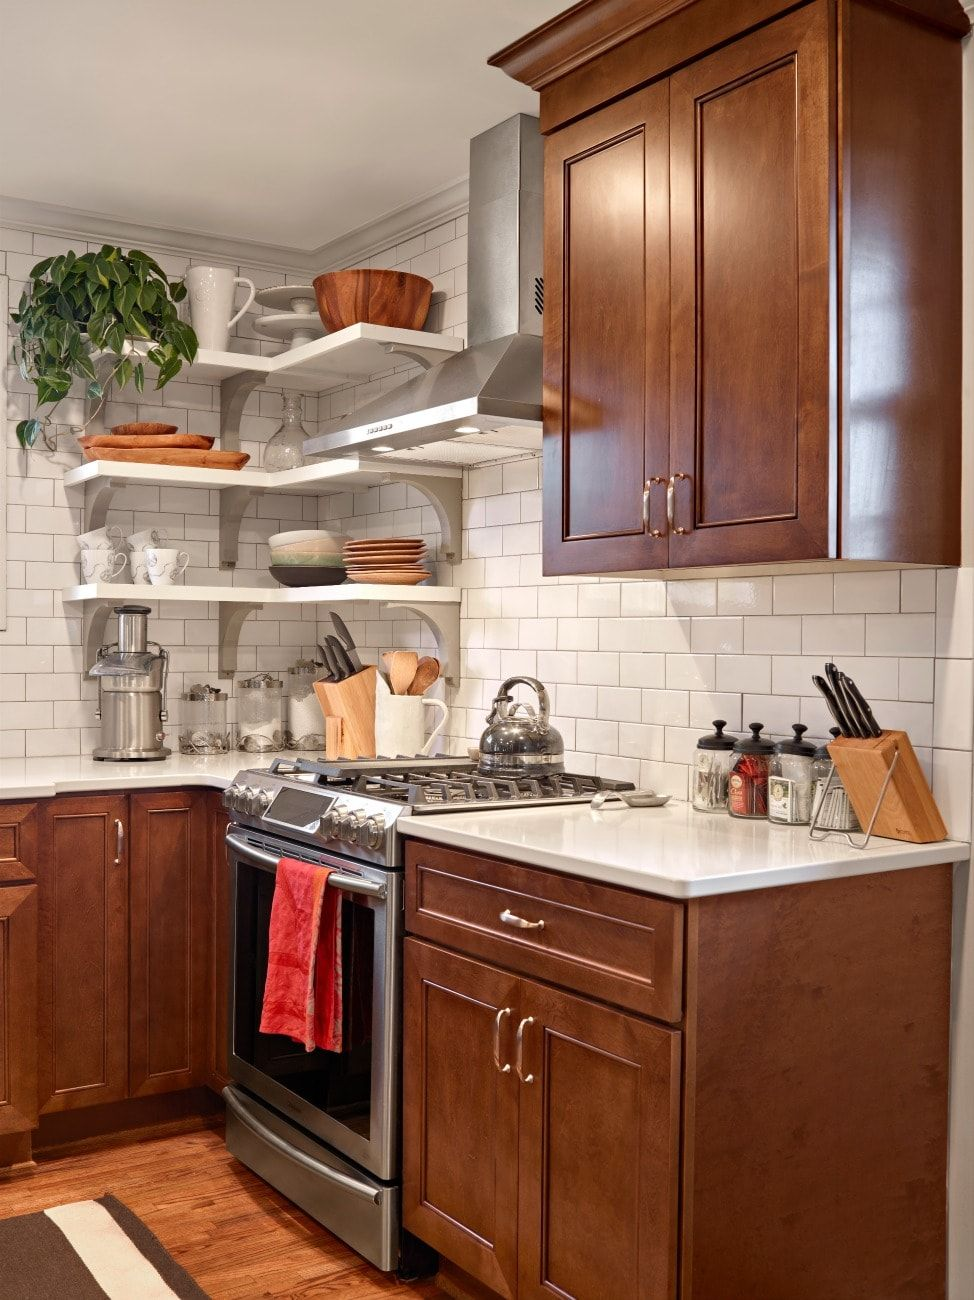 Delray Chestnut (With images) | Assembled kitchen cabinets ...